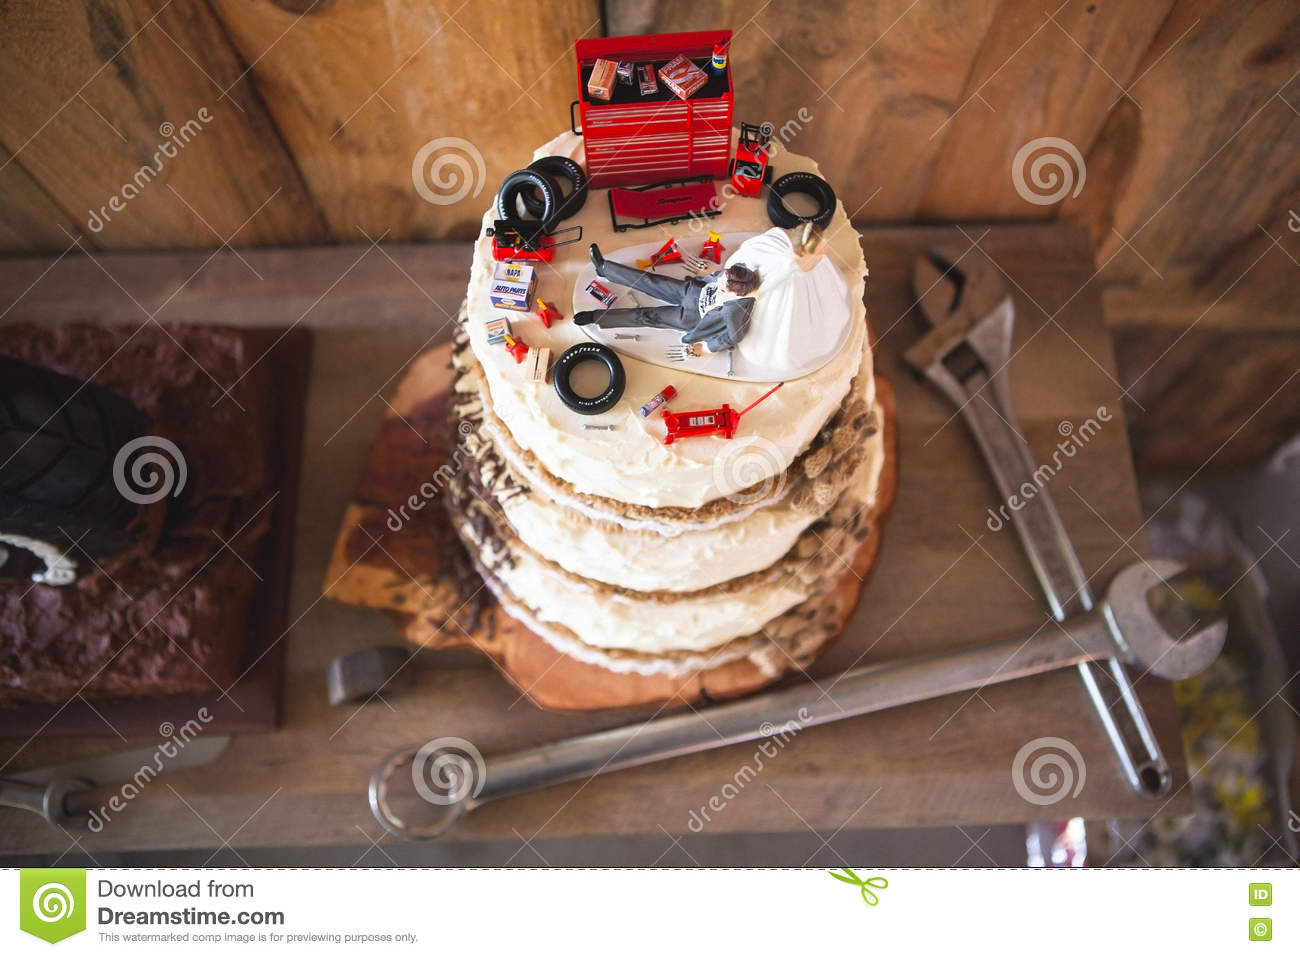 Marvelous Redneck Wedding Cake Topper With Mechanic Groom Editorial Stock Funny Birthday Cards Online Inifofree Goldxyz